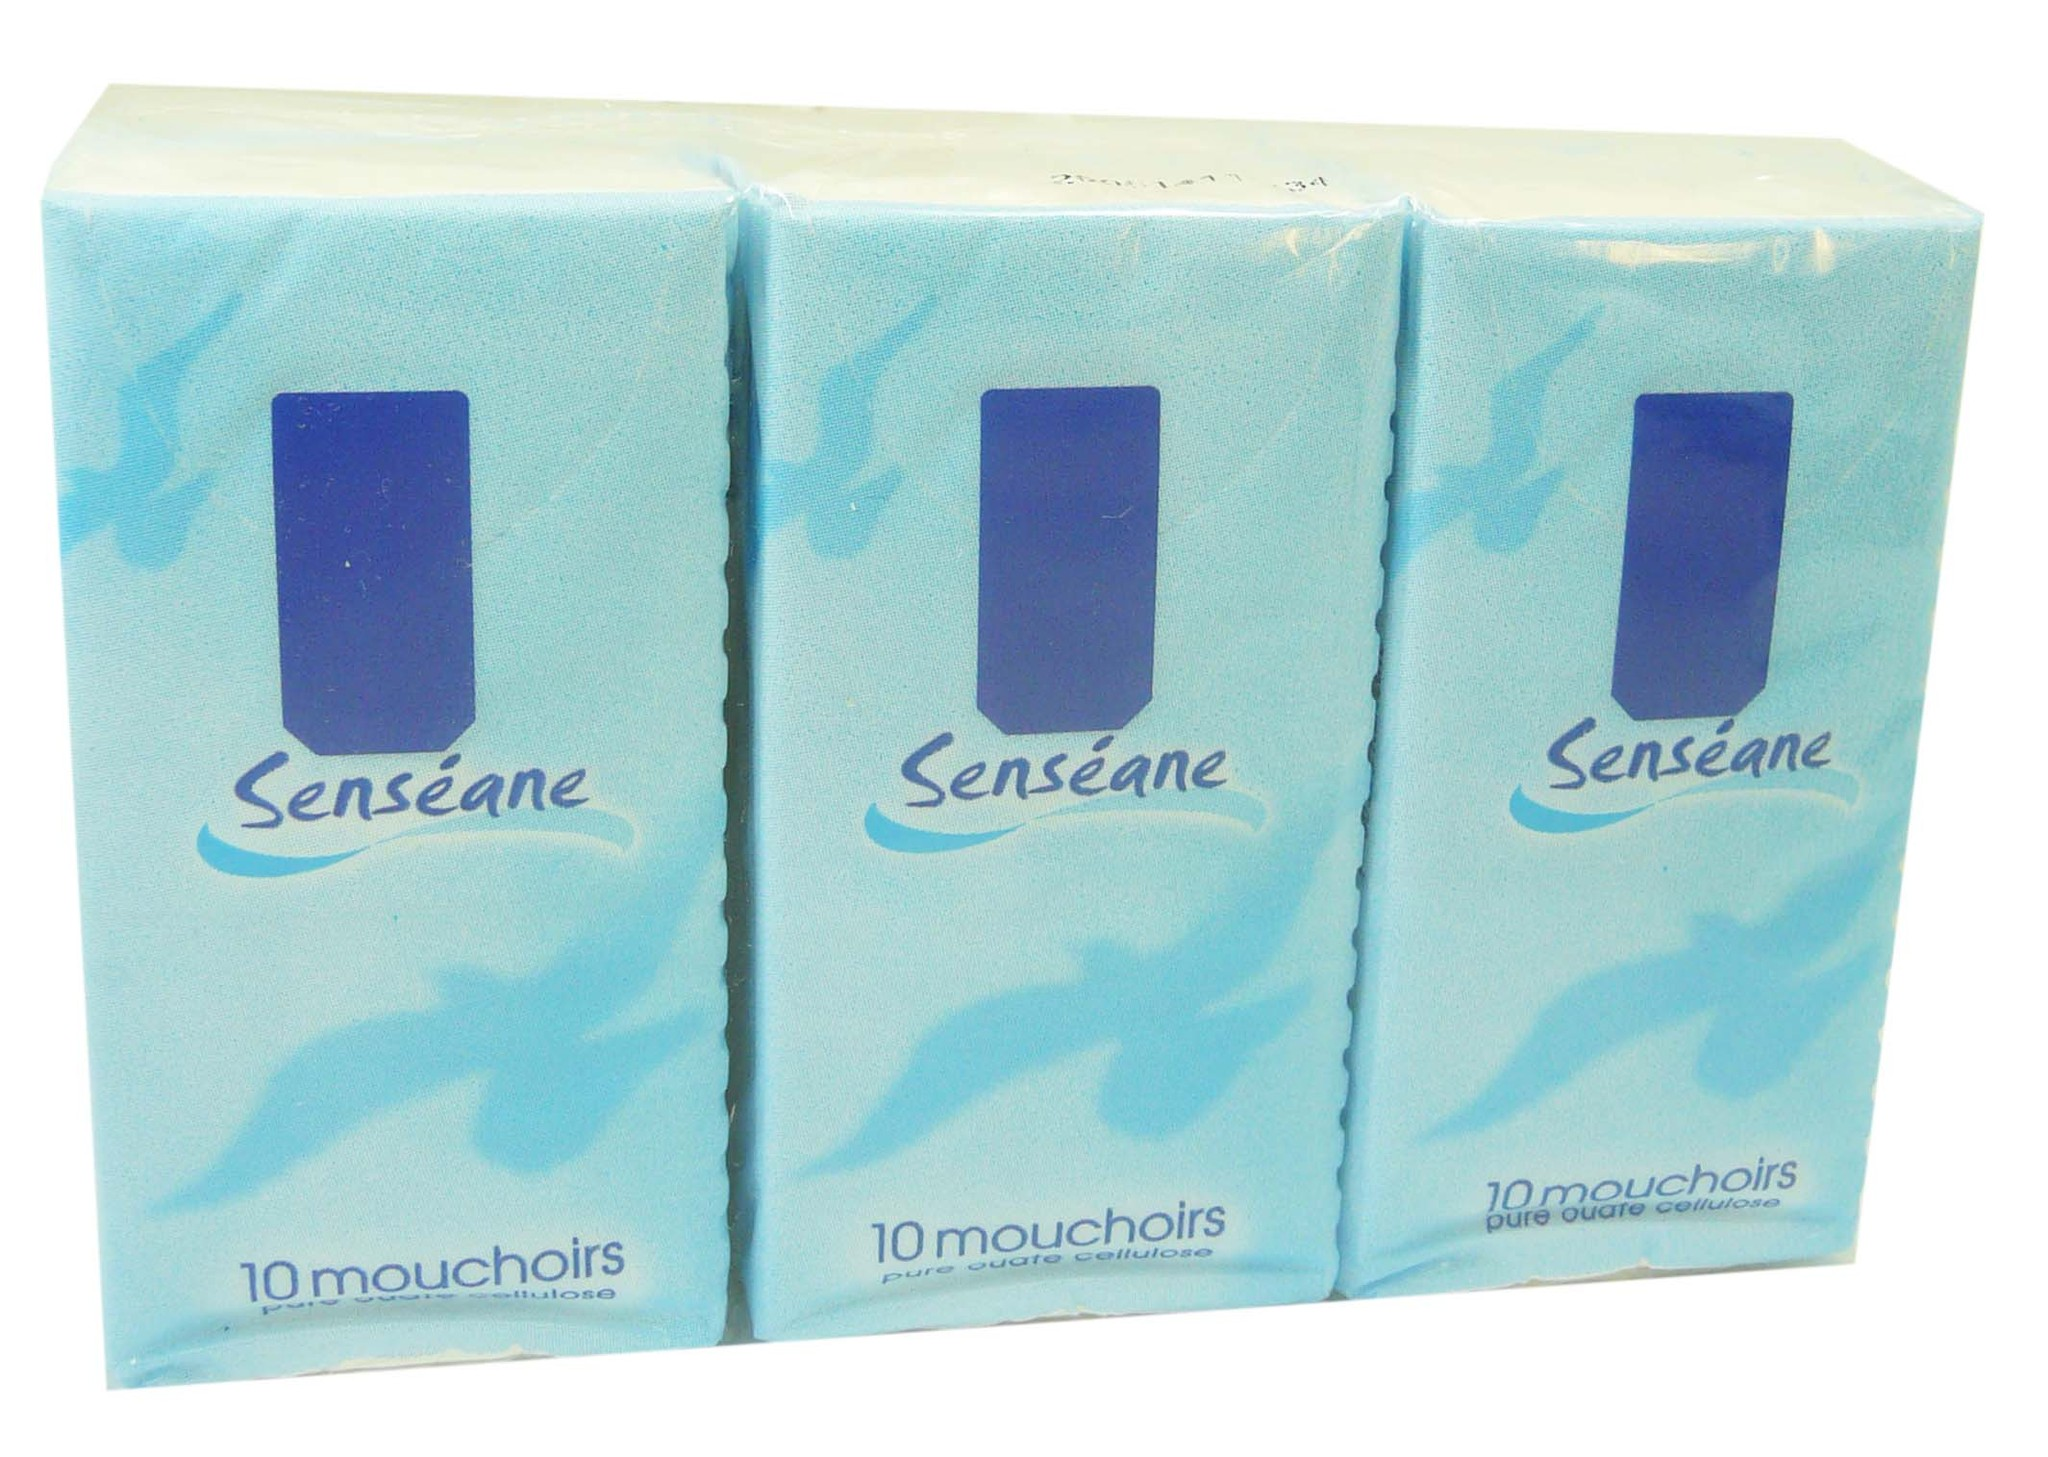 Senseane mouchoir nature lot de 6x10